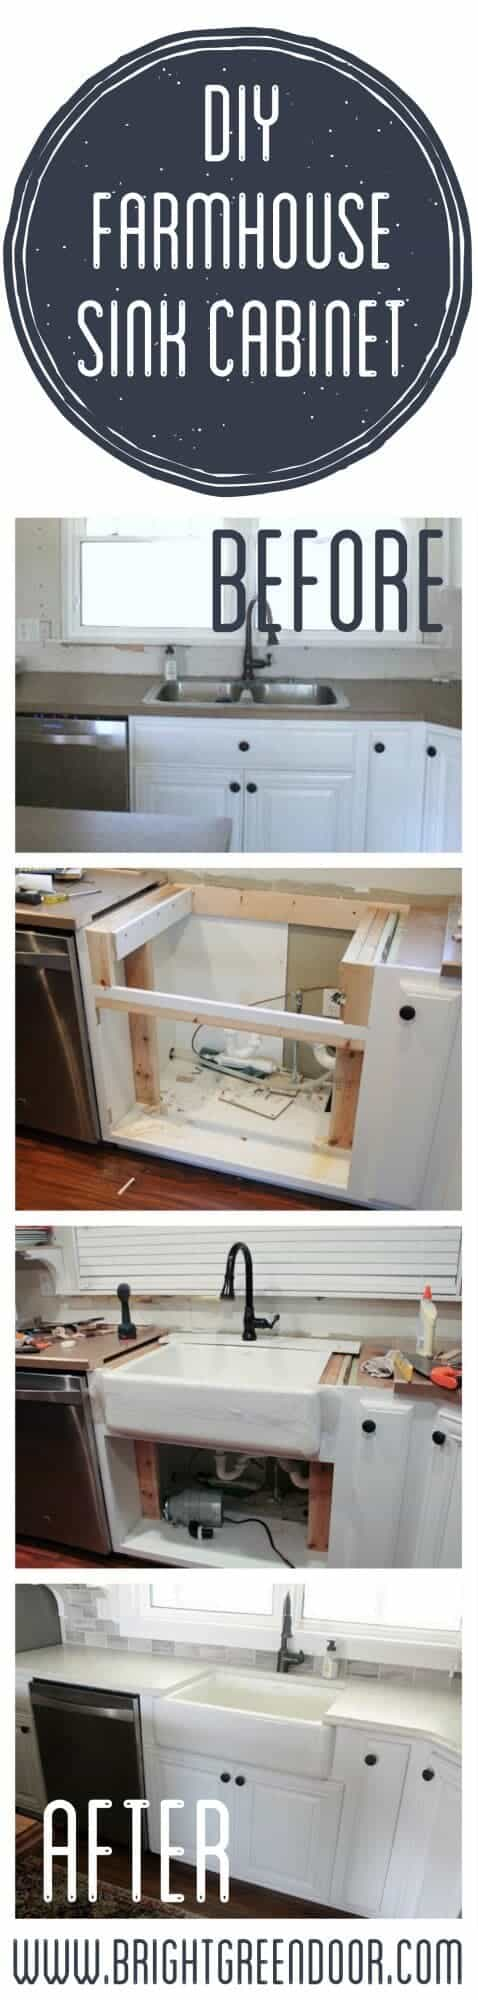 Farmhouse Sink by Bright Green Door   DIY Farmhouse Decor Projects for Fixer Upper Style